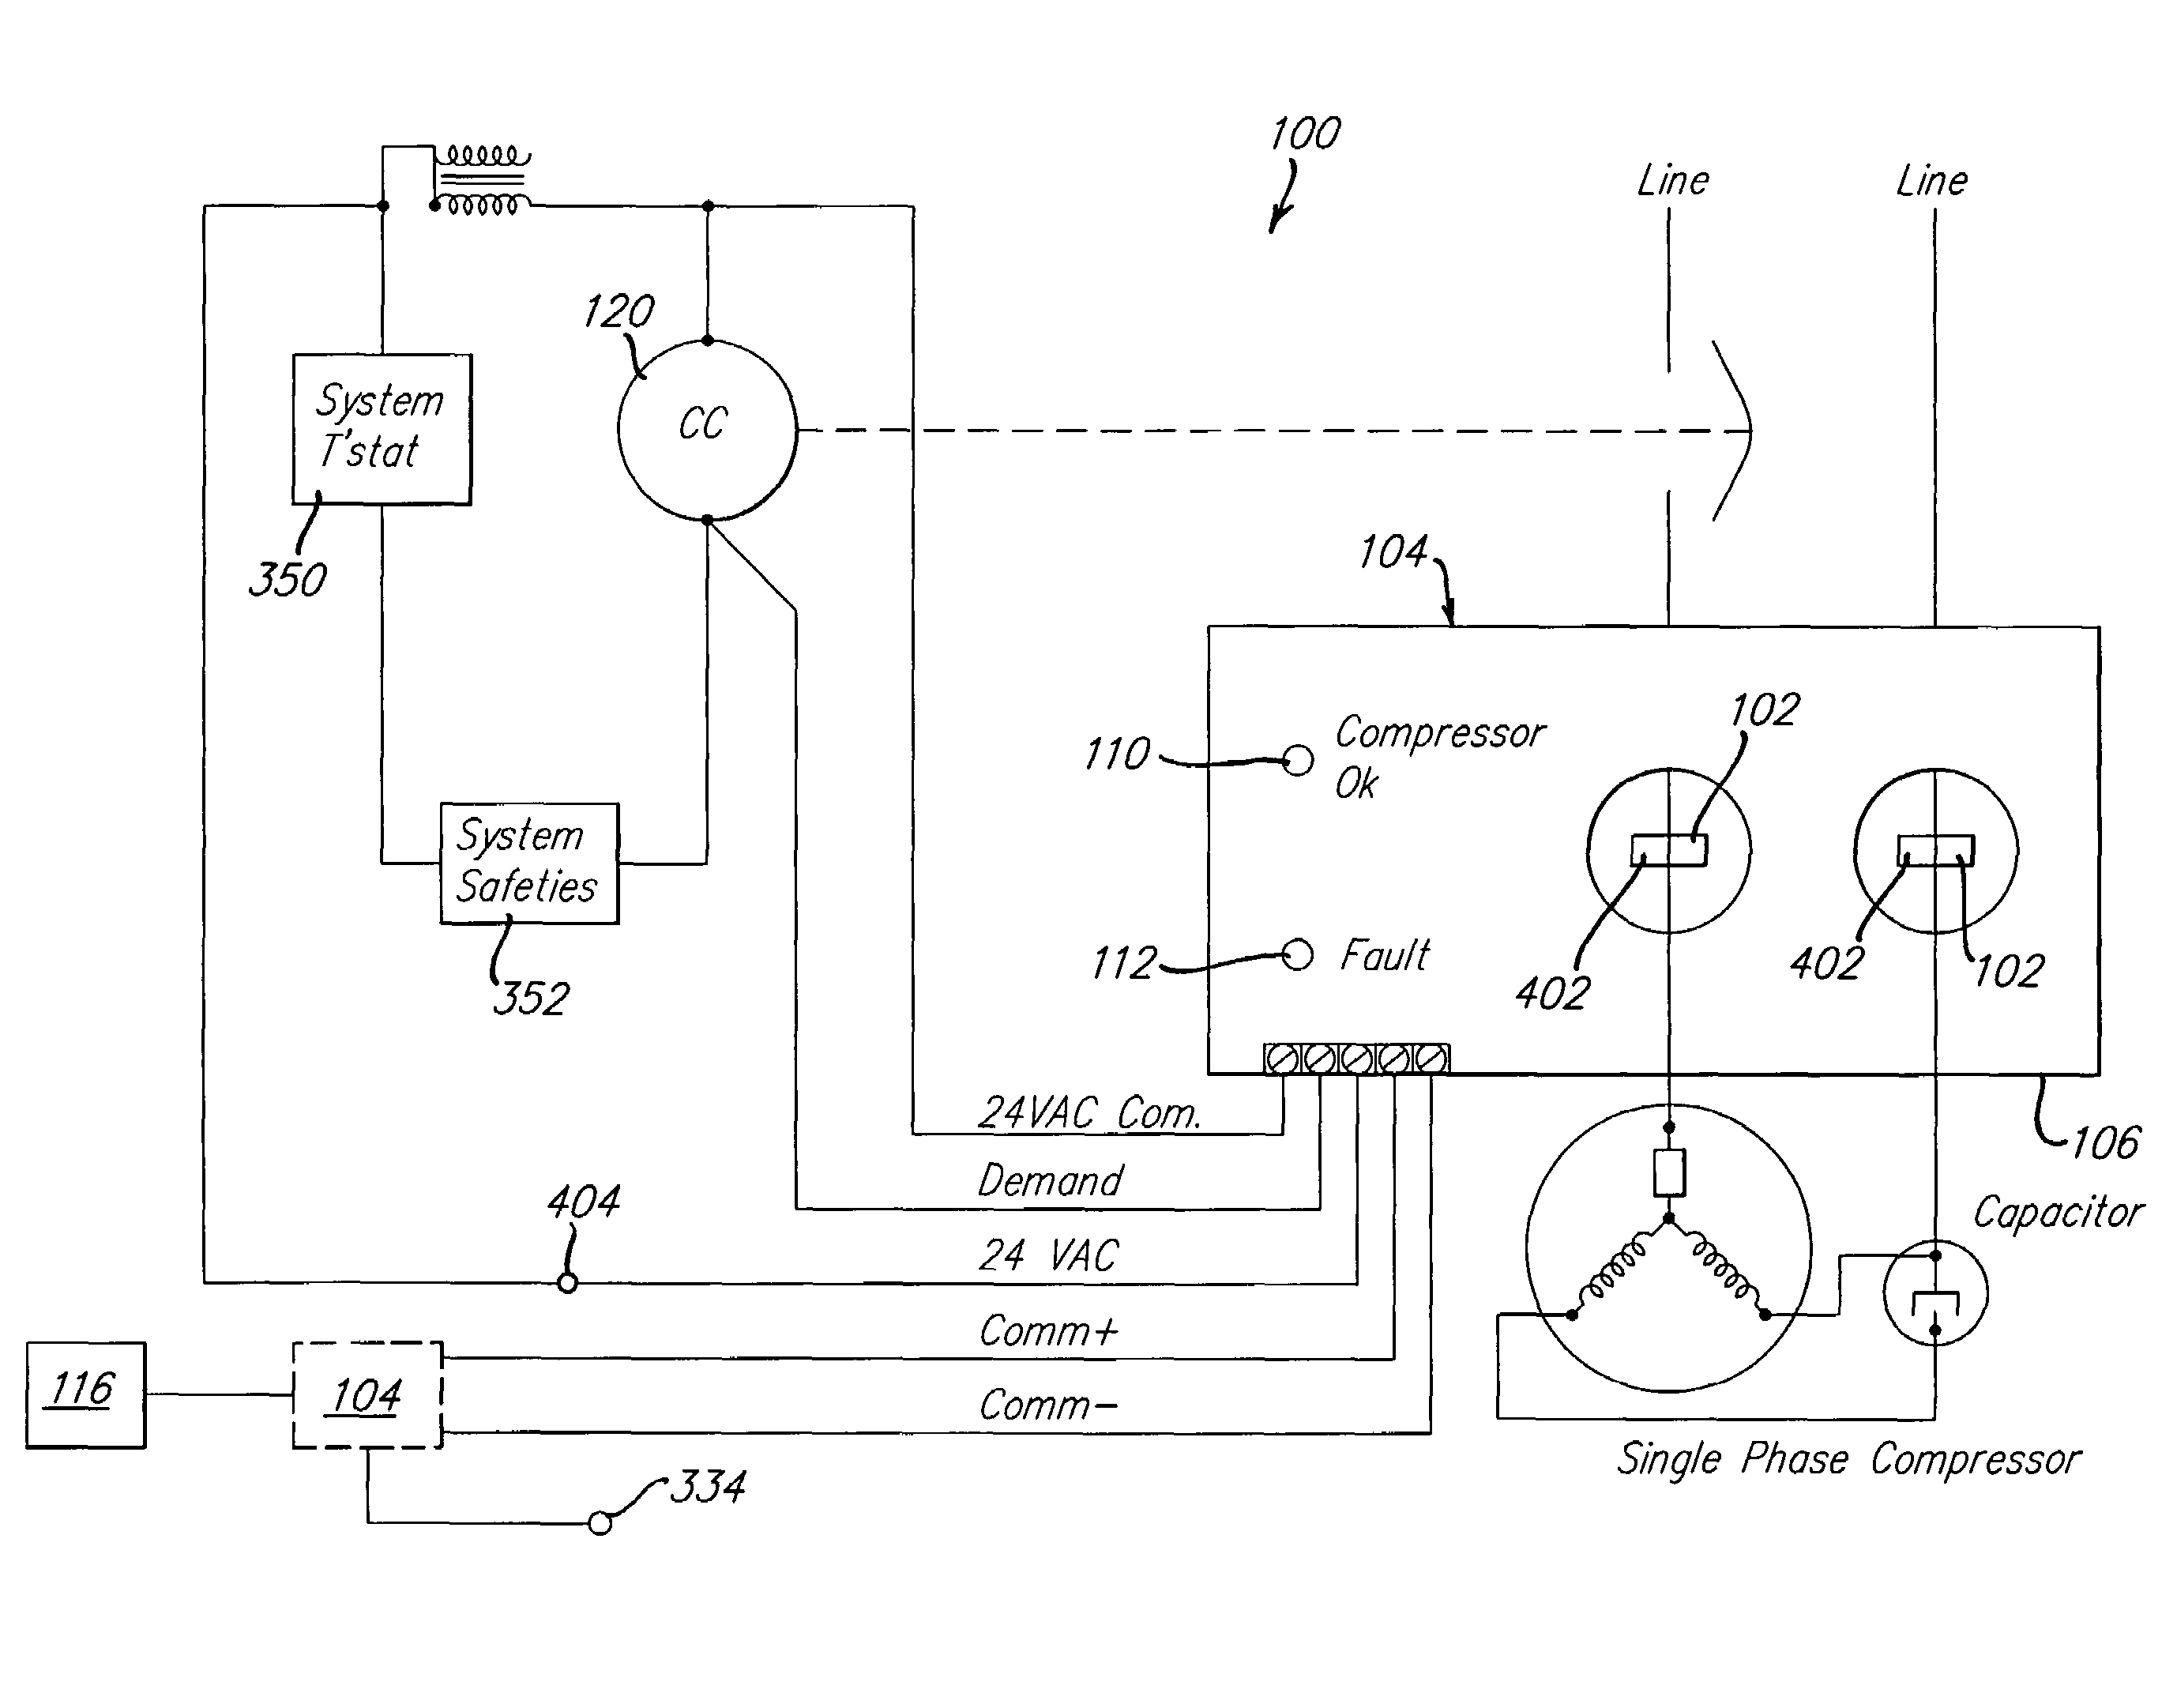 compressor wiring diagram patent us7647783 - compressor diagnostic system - google ...